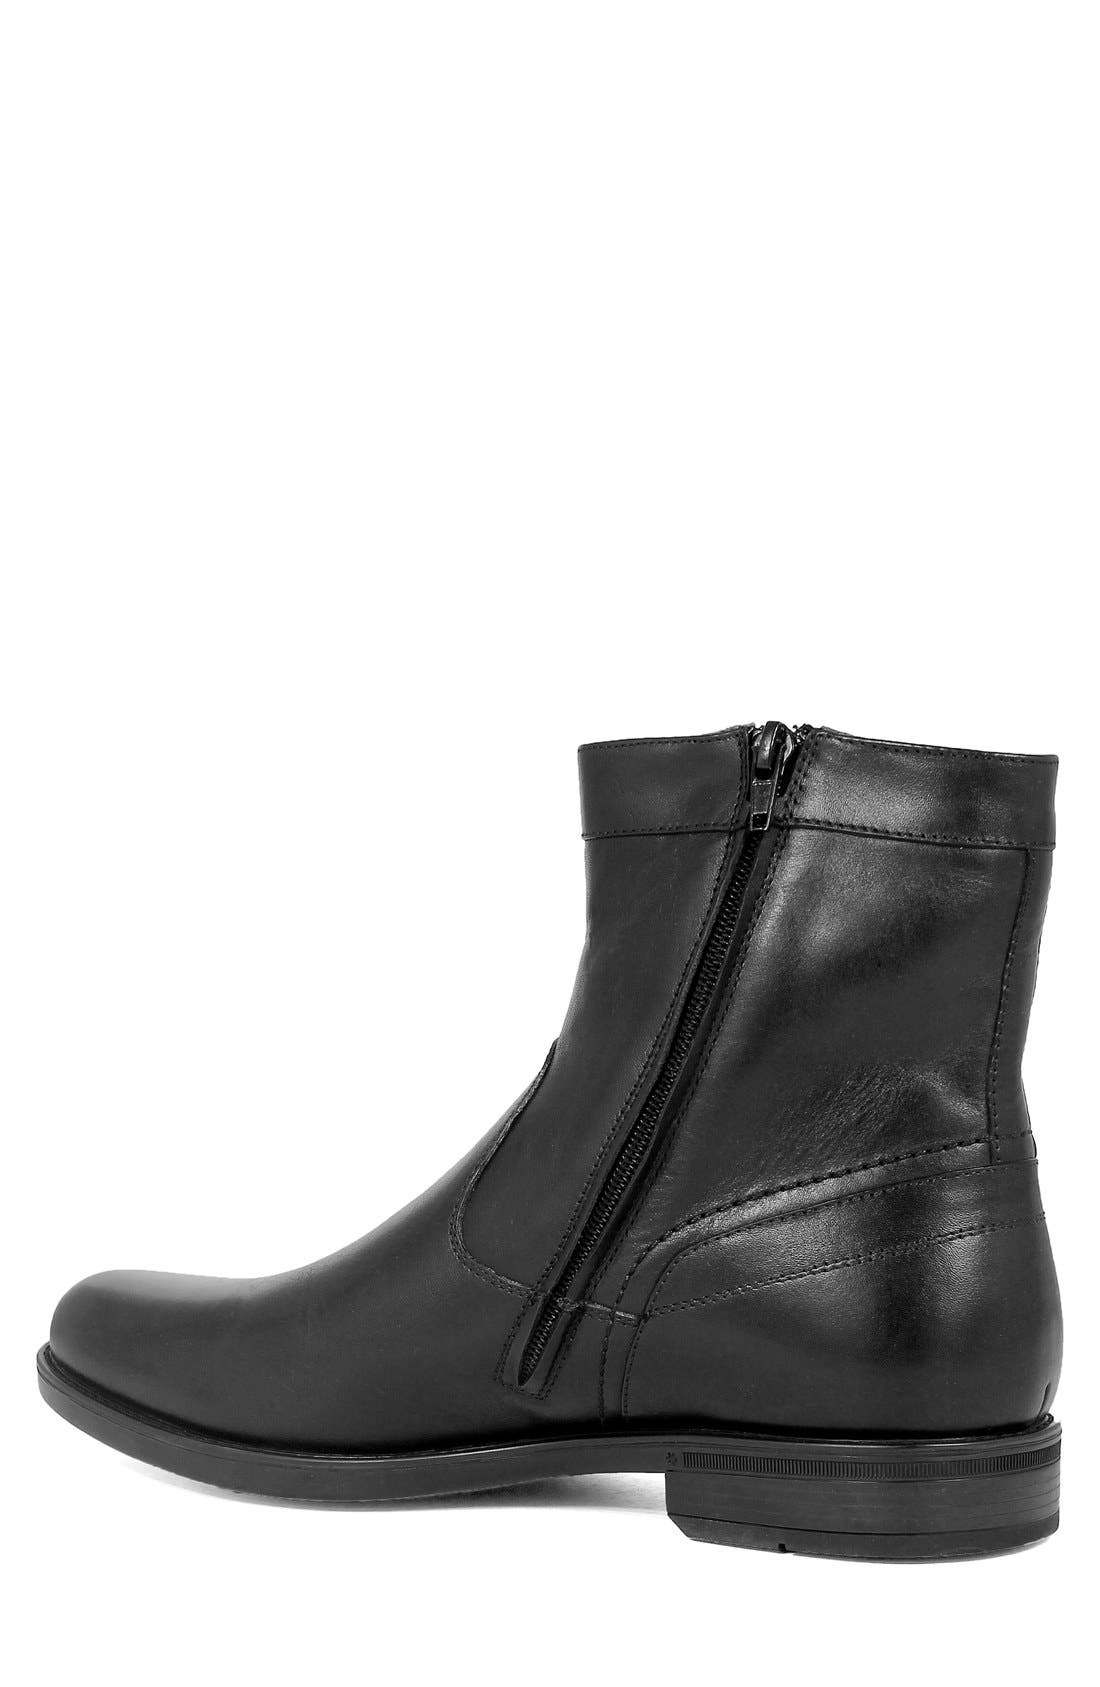 'Midtown' Zip Boot,                             Alternate thumbnail 2, color,                             BLACK LEATHER